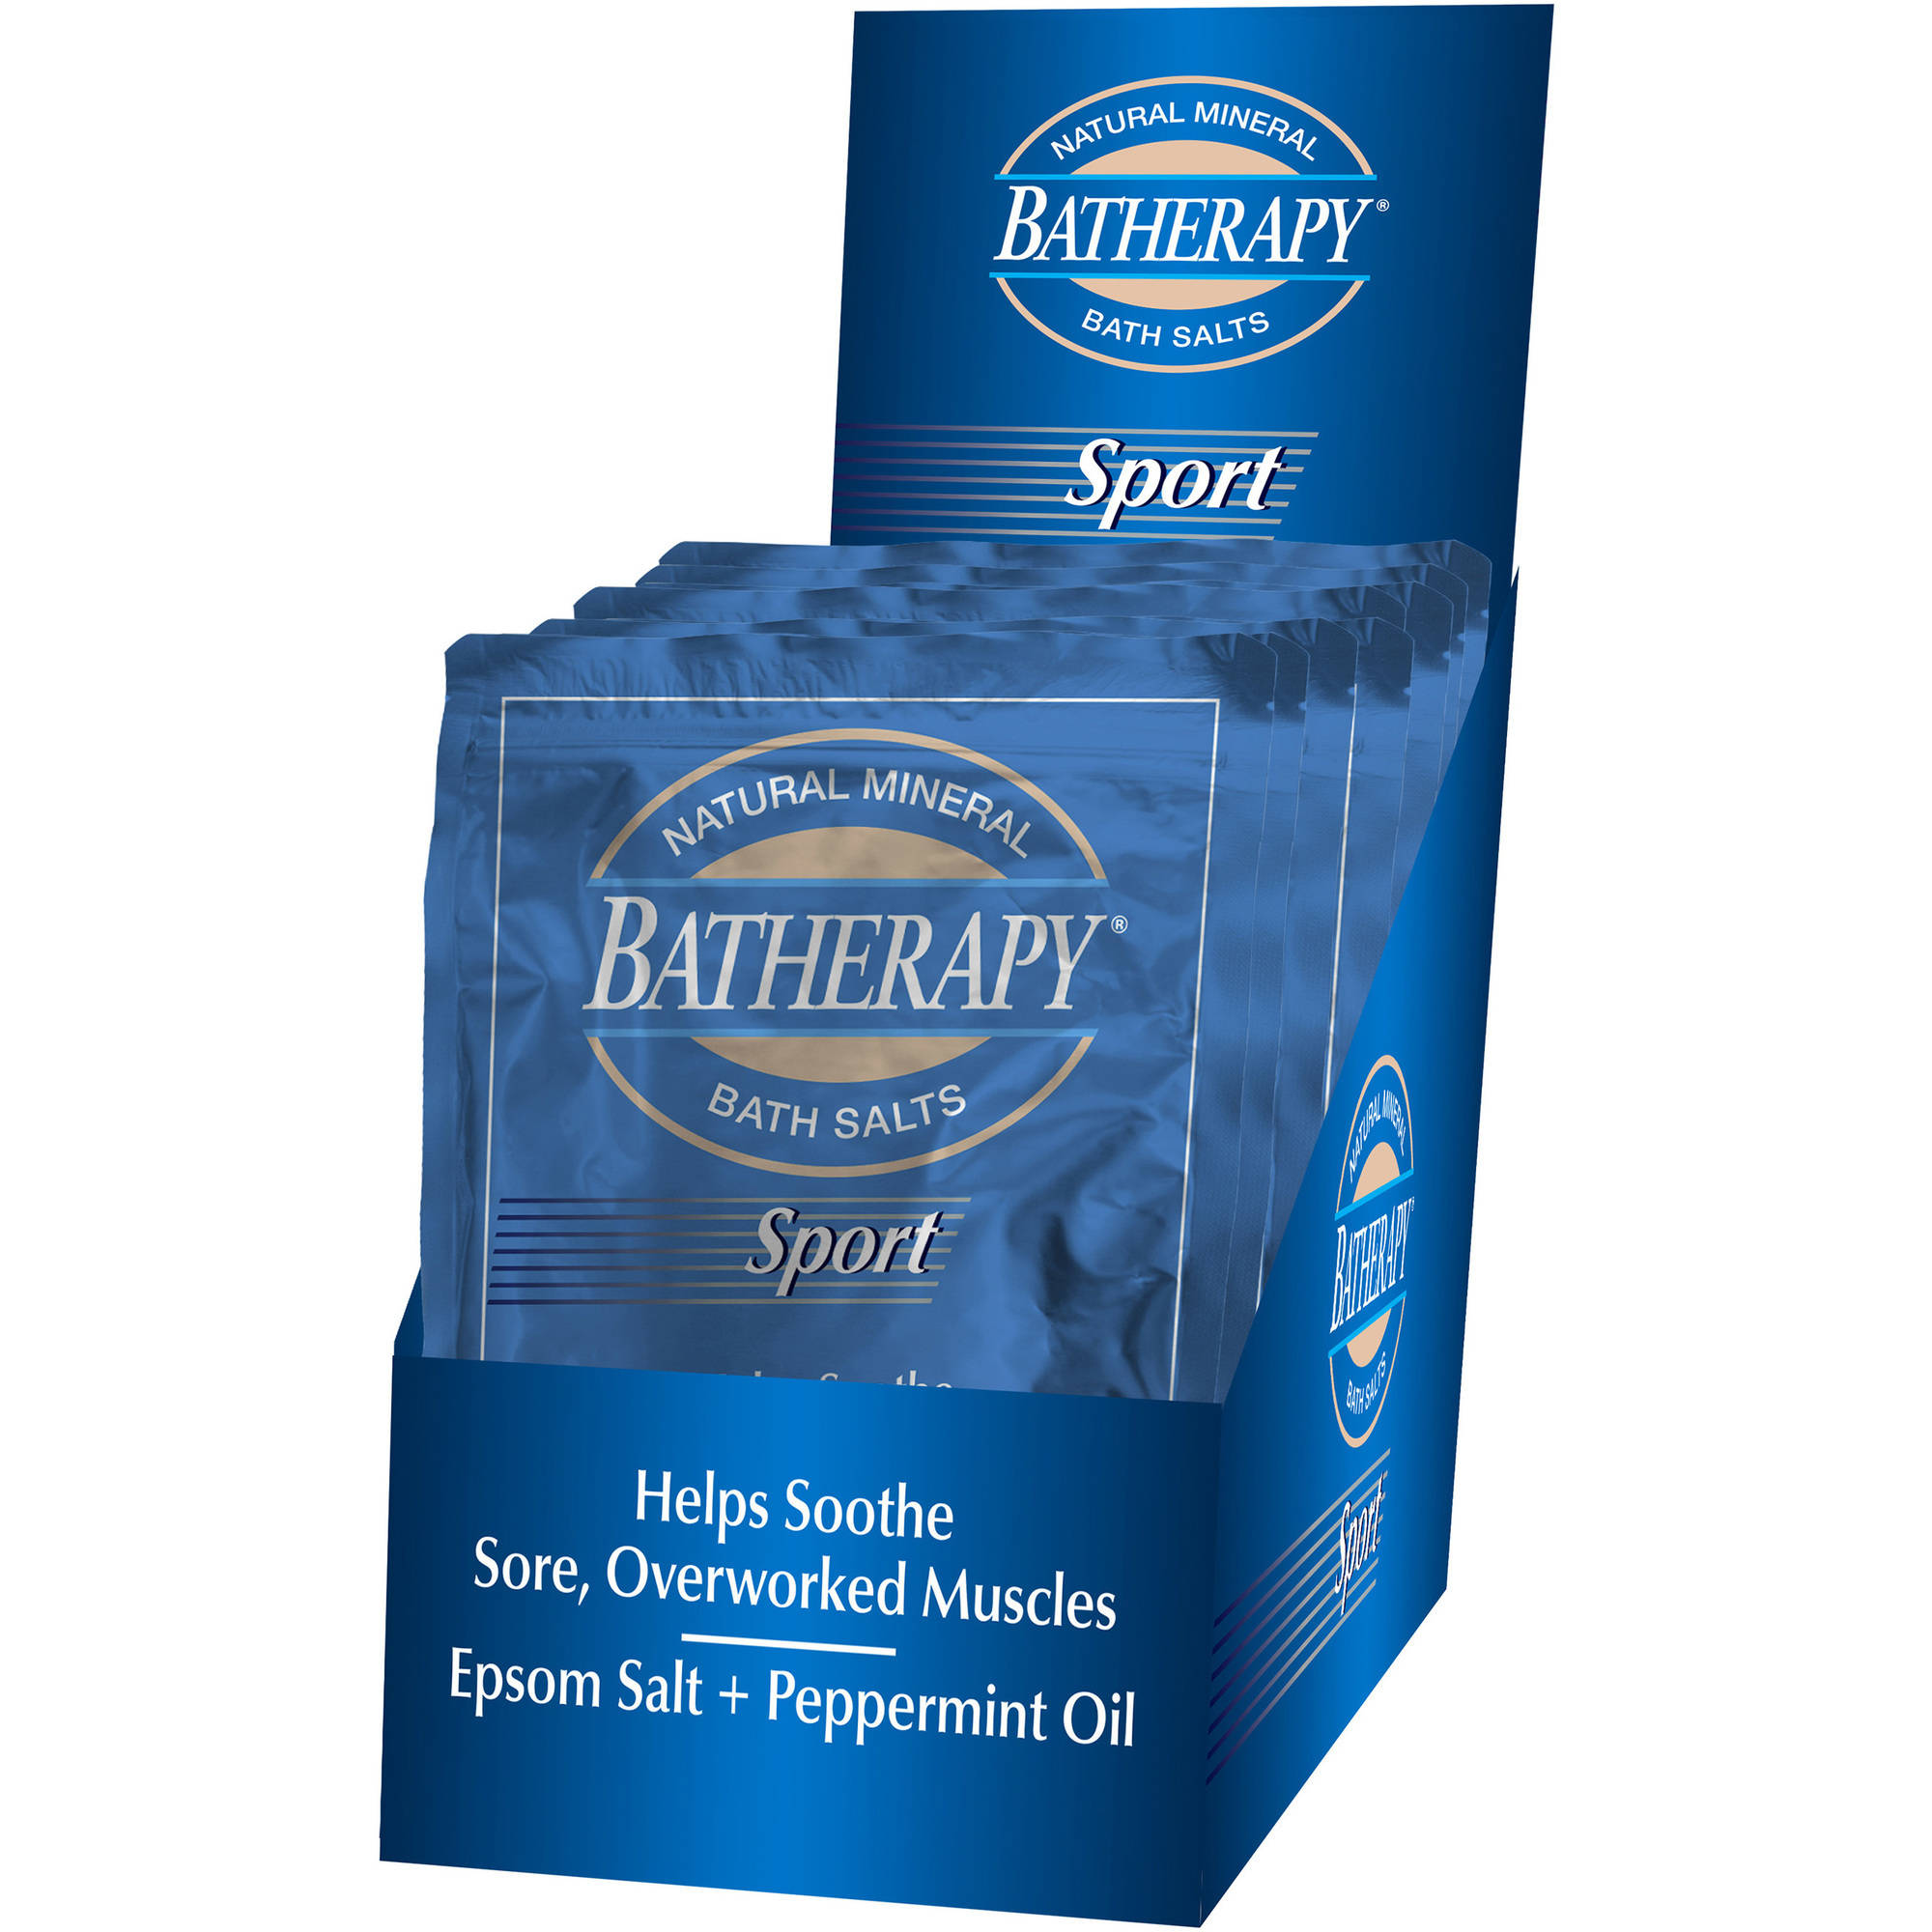 Queen Helene Batherapy Sport Natural Mineral Bath Salts, 1.5 oz